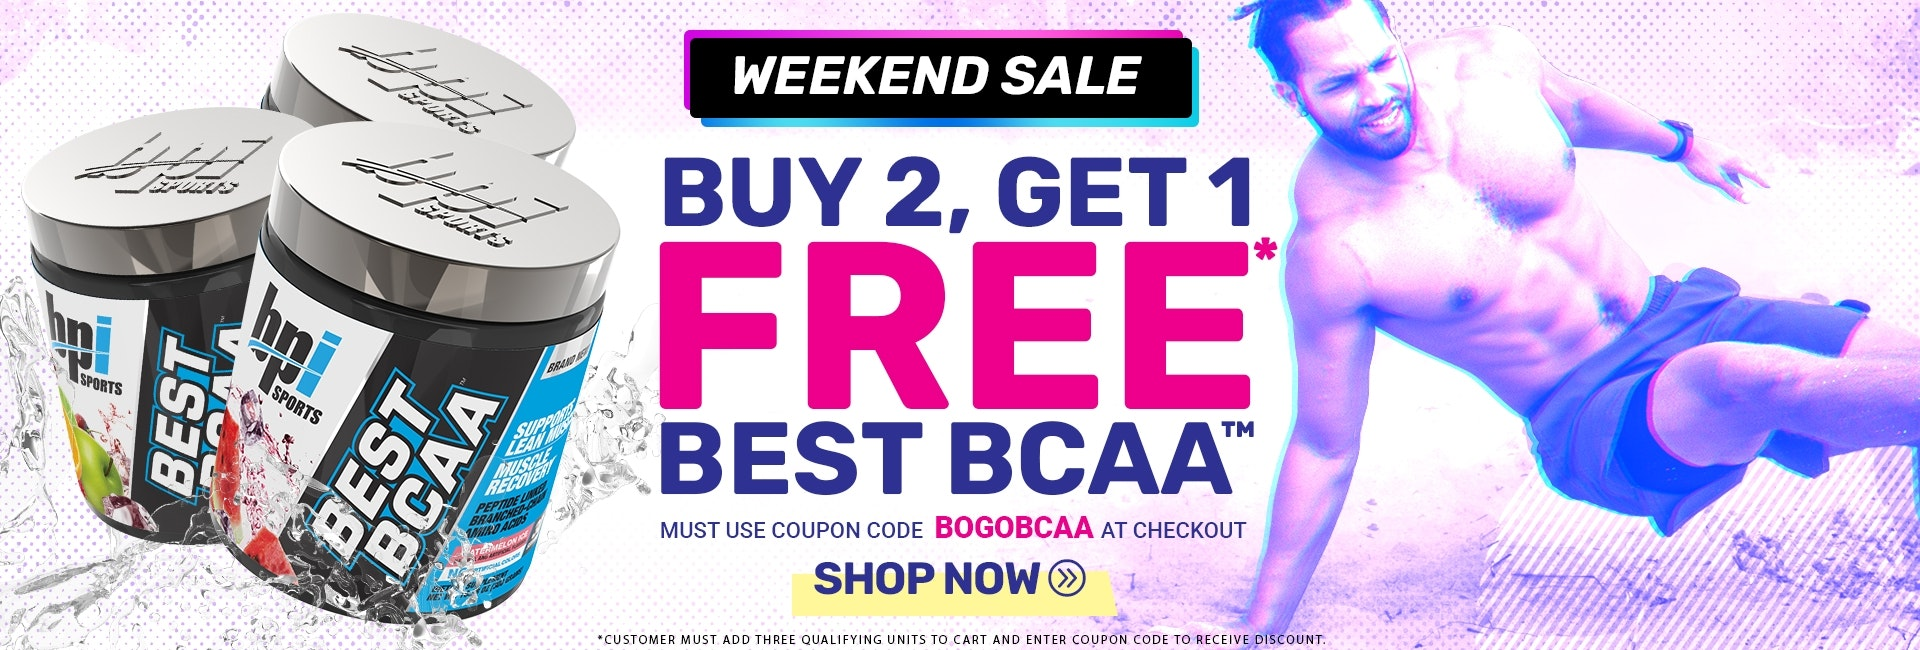 B2 G1 Free Best BCAA 1920 X650 04 HP DESK